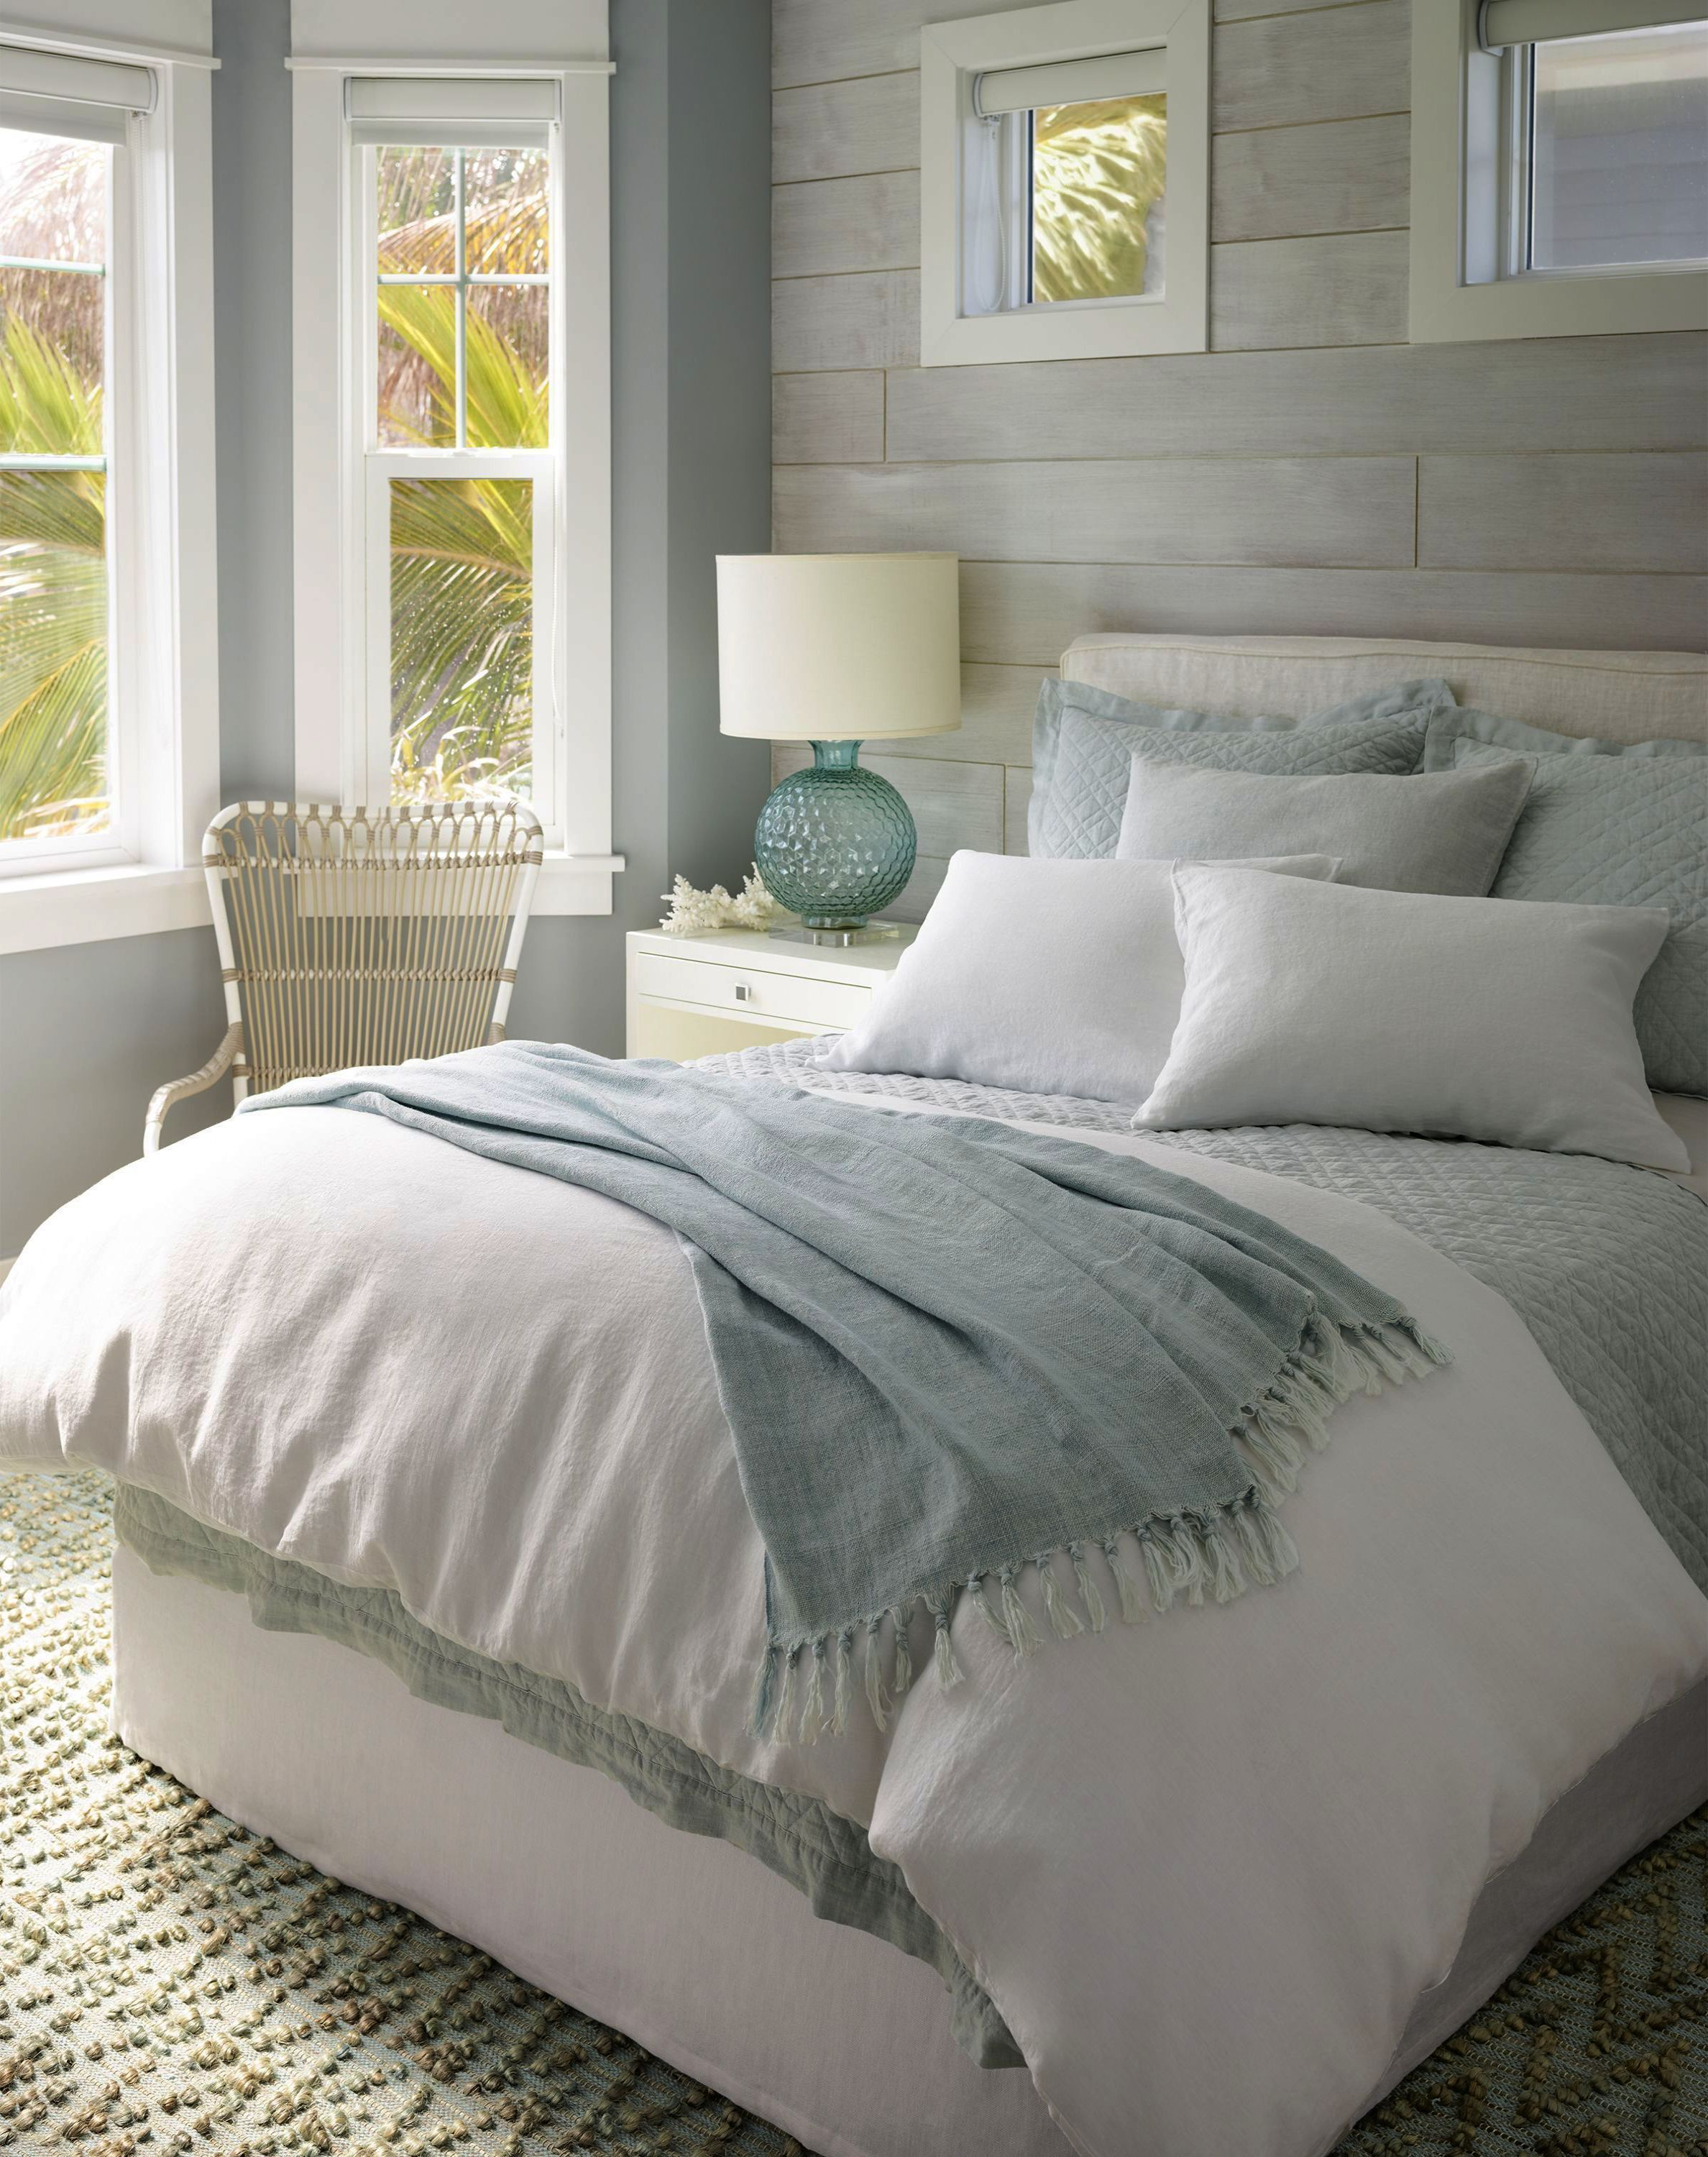 The New Nz Design Blog The Best Design From New Zealand And The World But Mainly Nz White Wall Bedroom Farmhouse Style Master Bedroom Remodel Bedroom